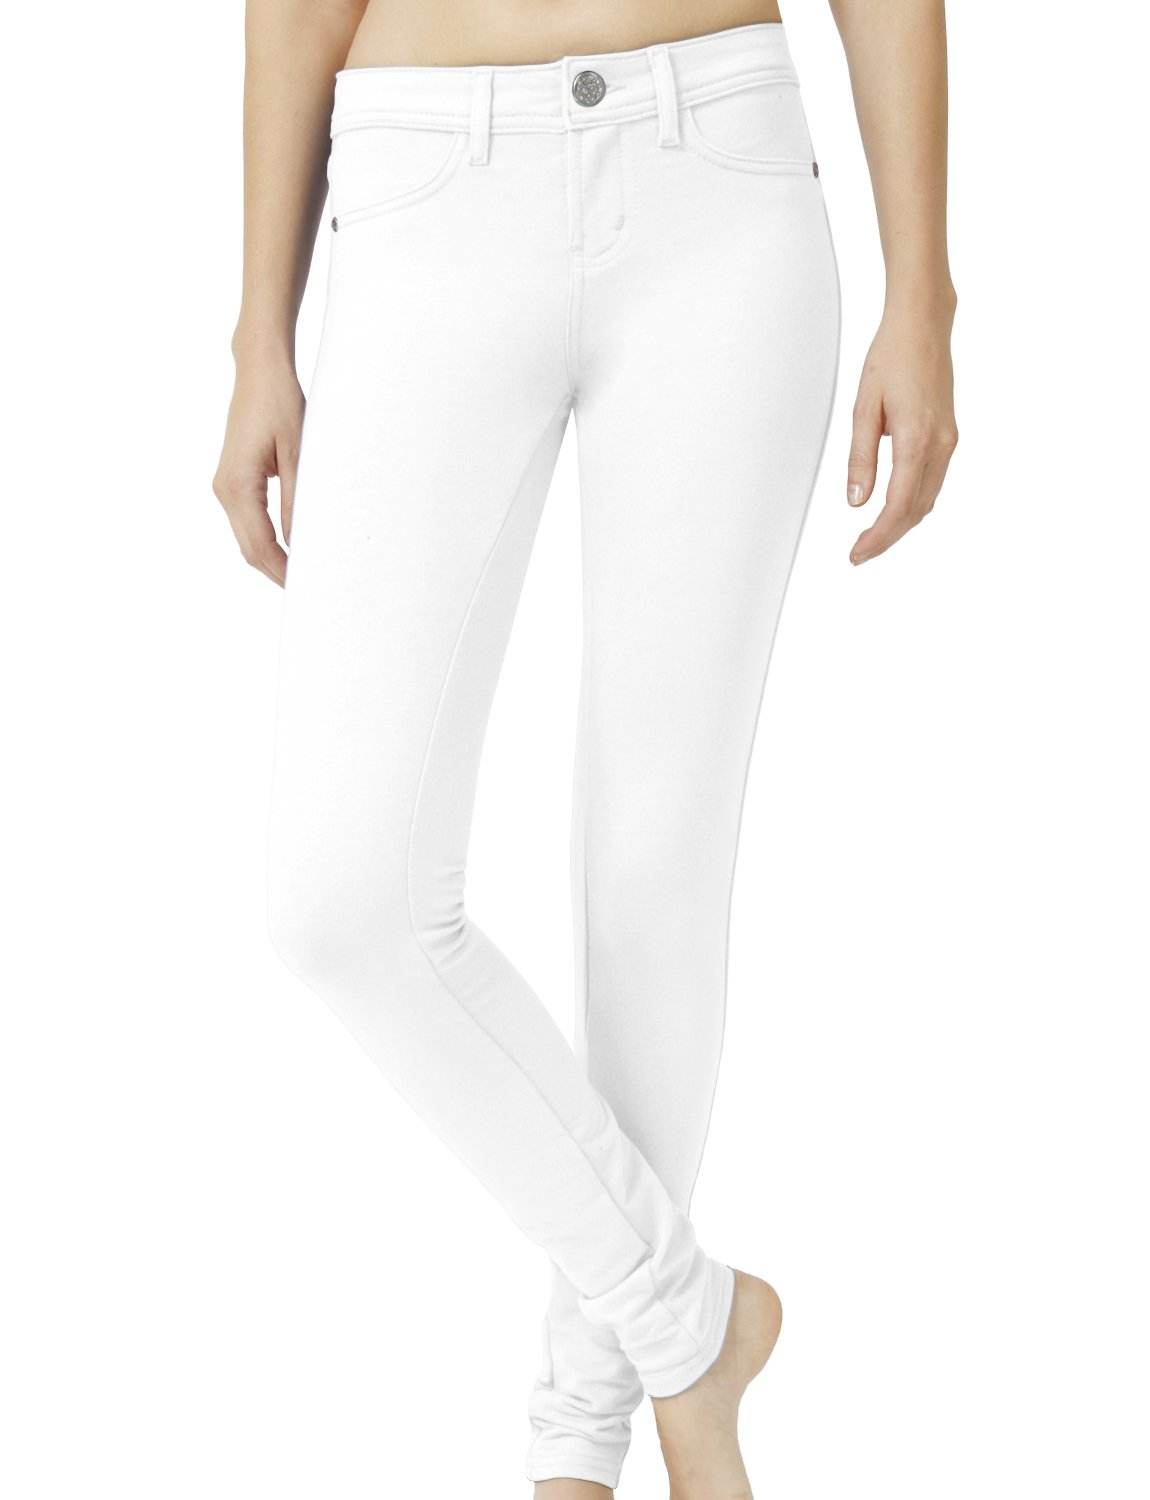 NE PEOPLE Womens Solid Color Basic Jeggings (43 Colors)